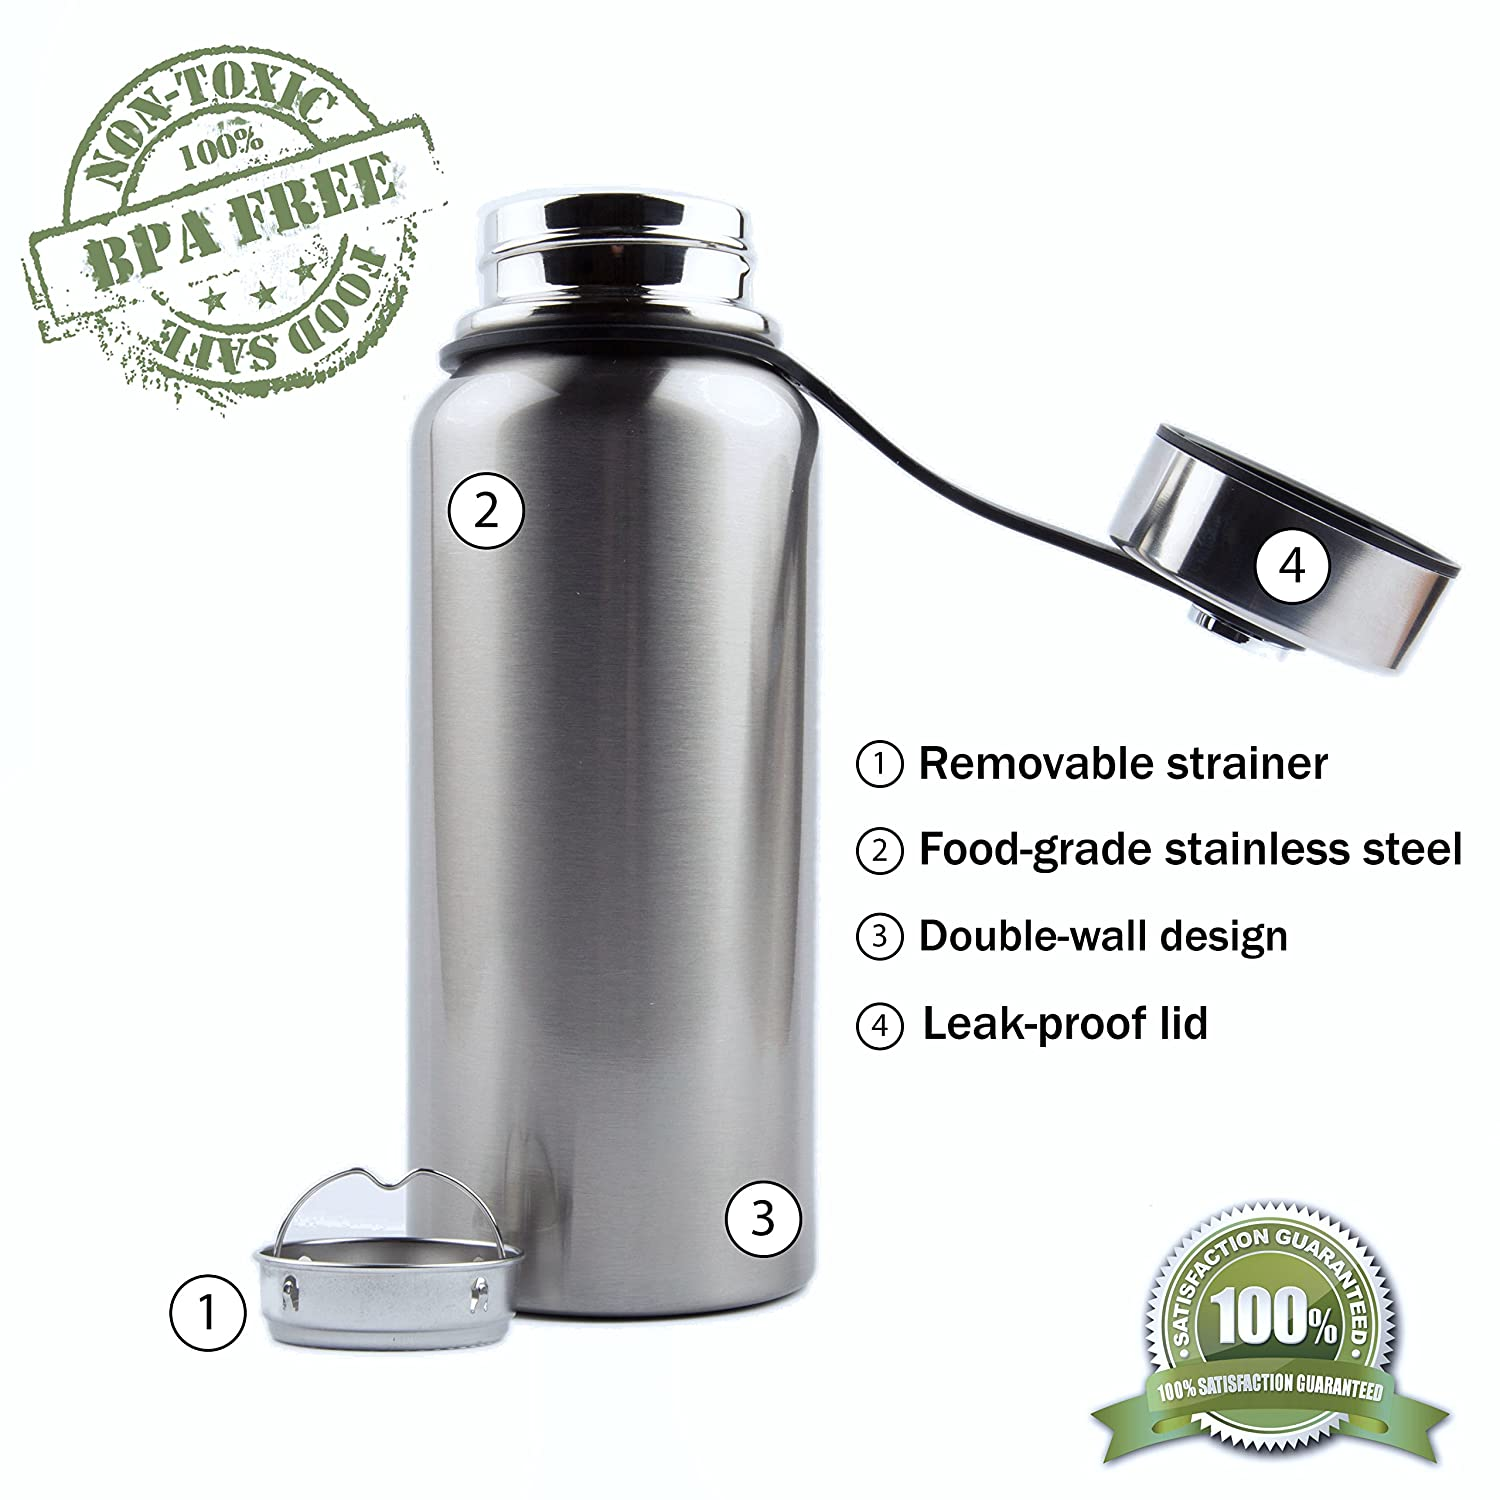 66b81c2389 Vacuum insulated large water bottle - non toxic, BPA-free, durable stainless  steel, leakproof double walled design, wide mouth, anti-slip bottom, ...